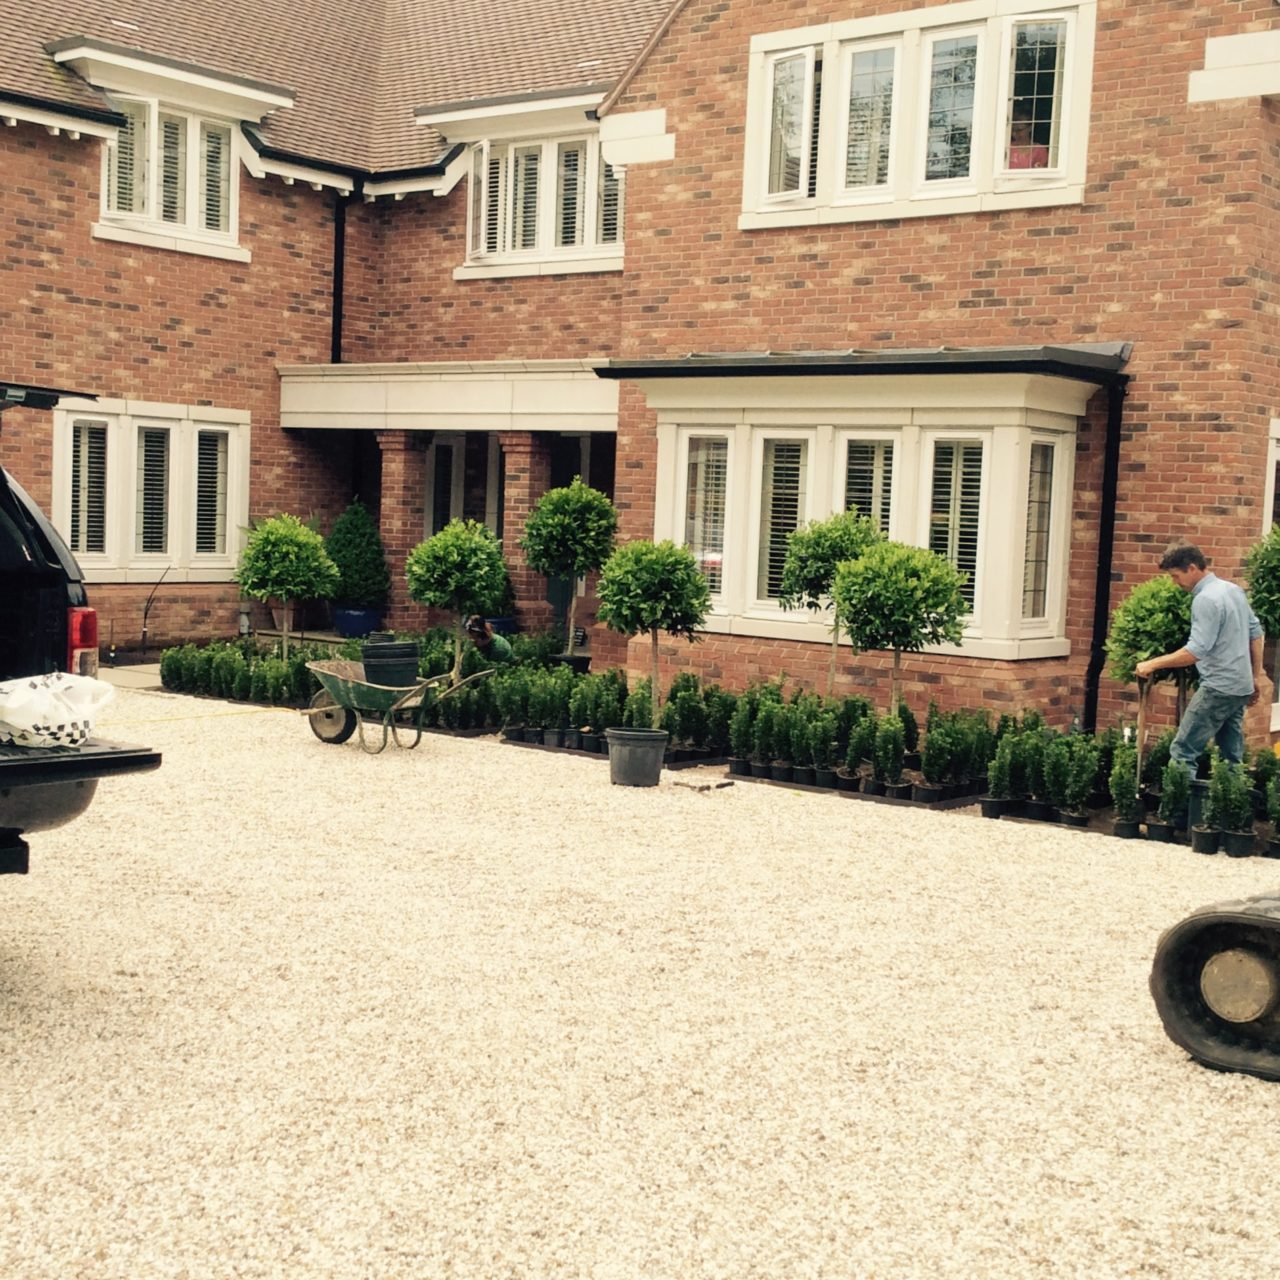 A parterre being built. Here the teams are just placing the plants before any planting can take place